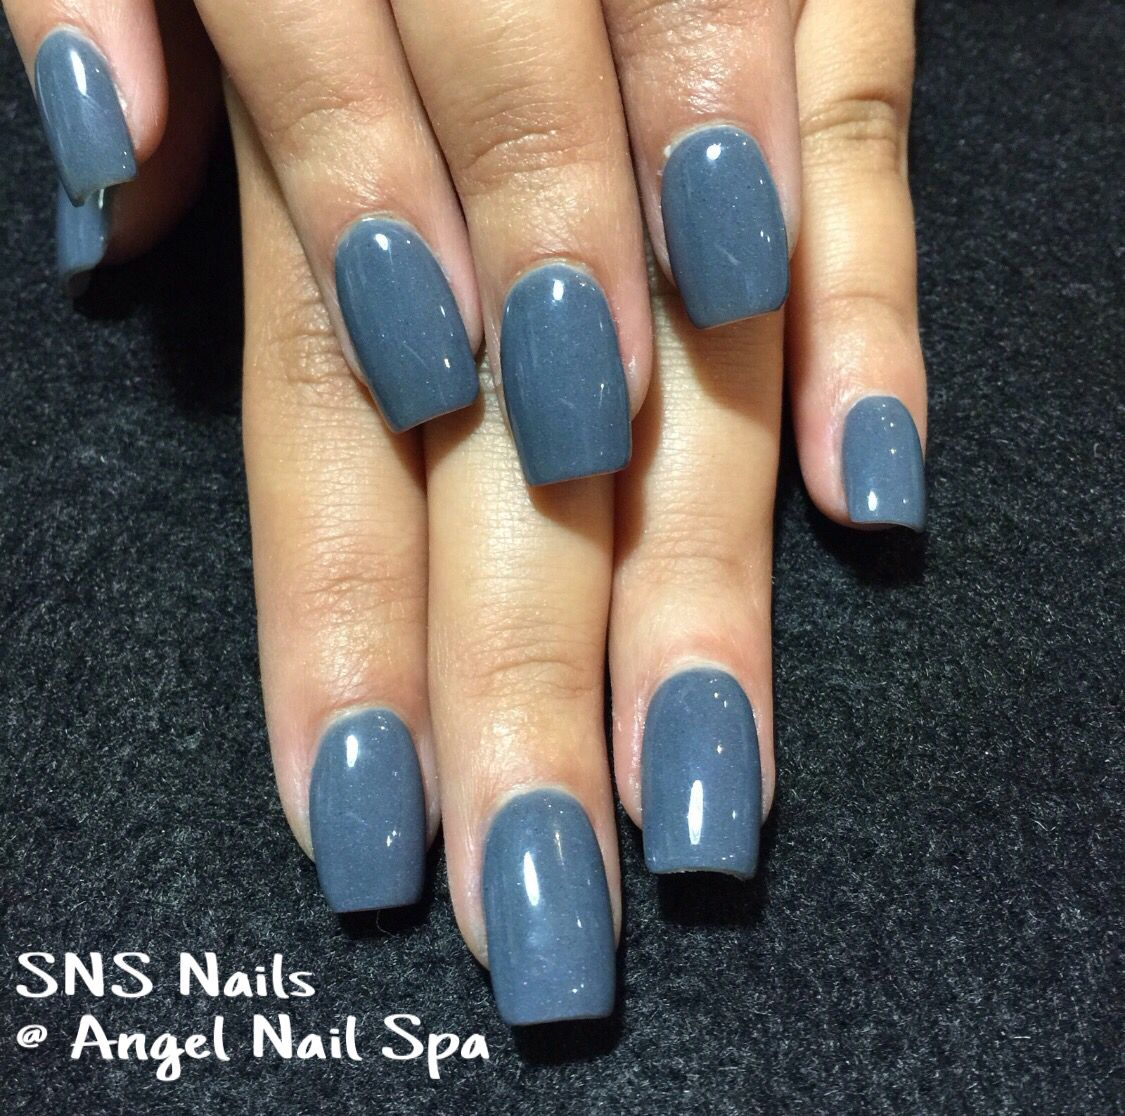 SNS nails (dipping powders ) . Not gel, not acrylics, but last ...